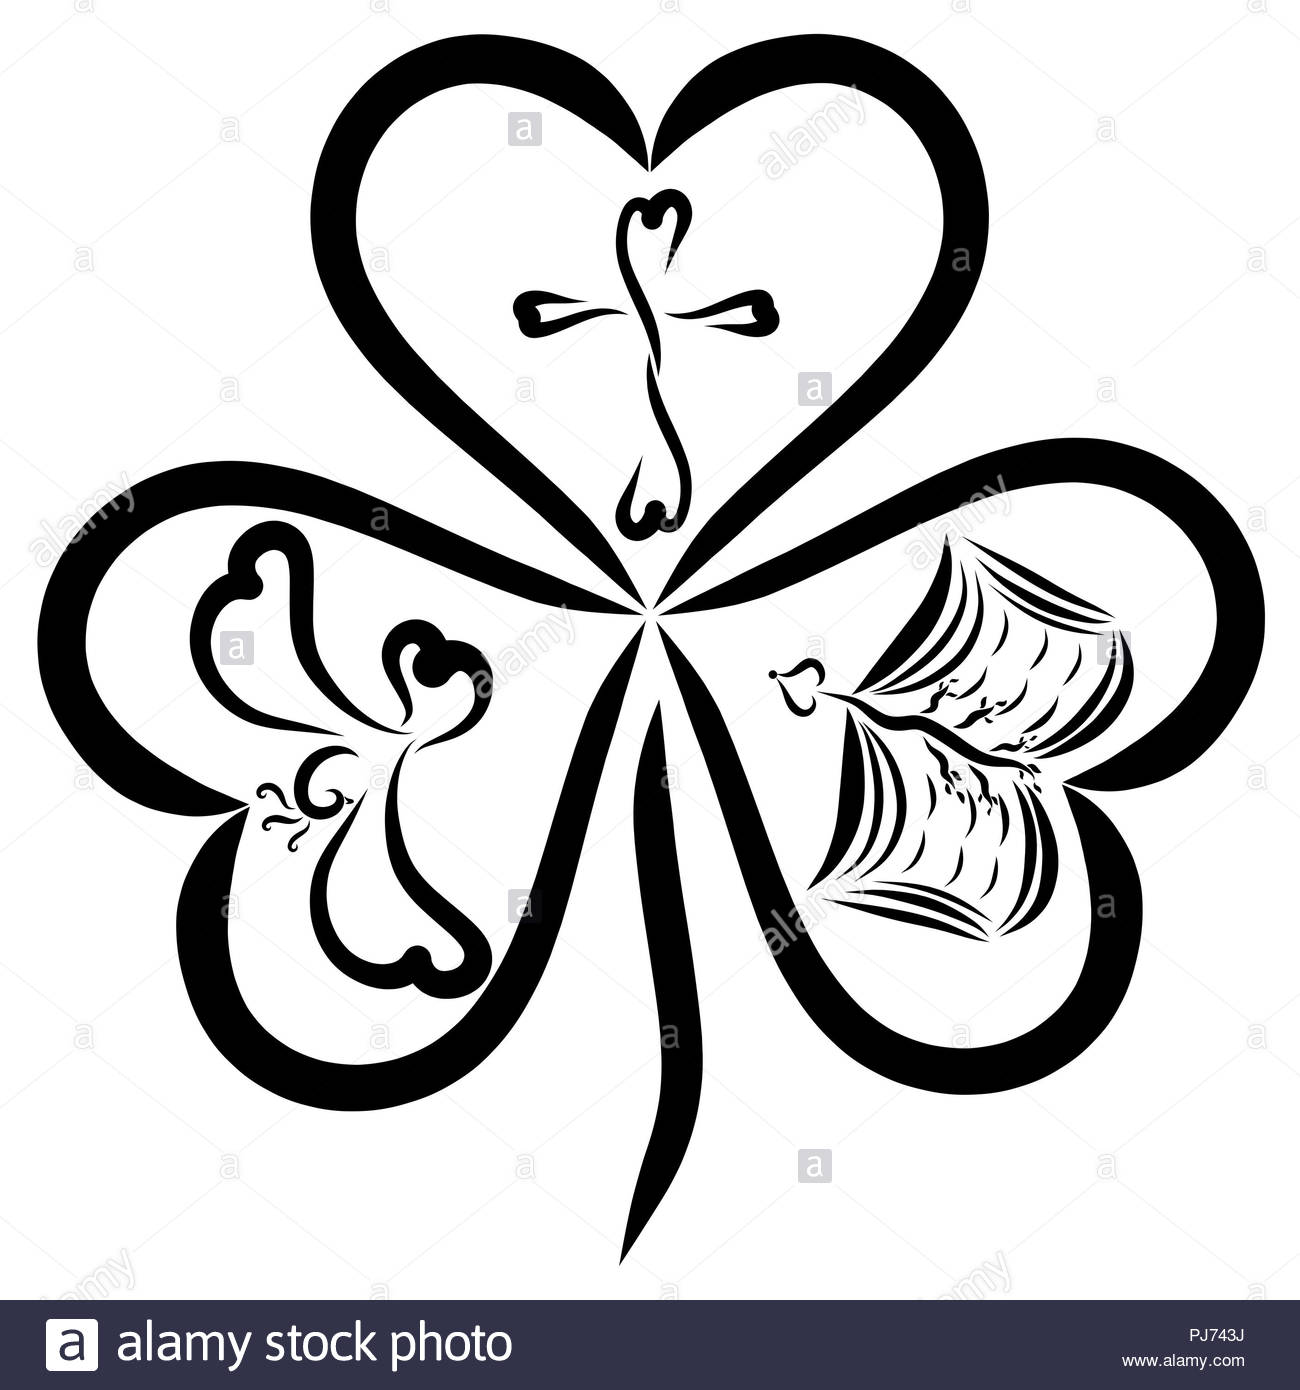 Clover with three leaves in the shape of heart and Christian symbols, the Triune God - Stock Image